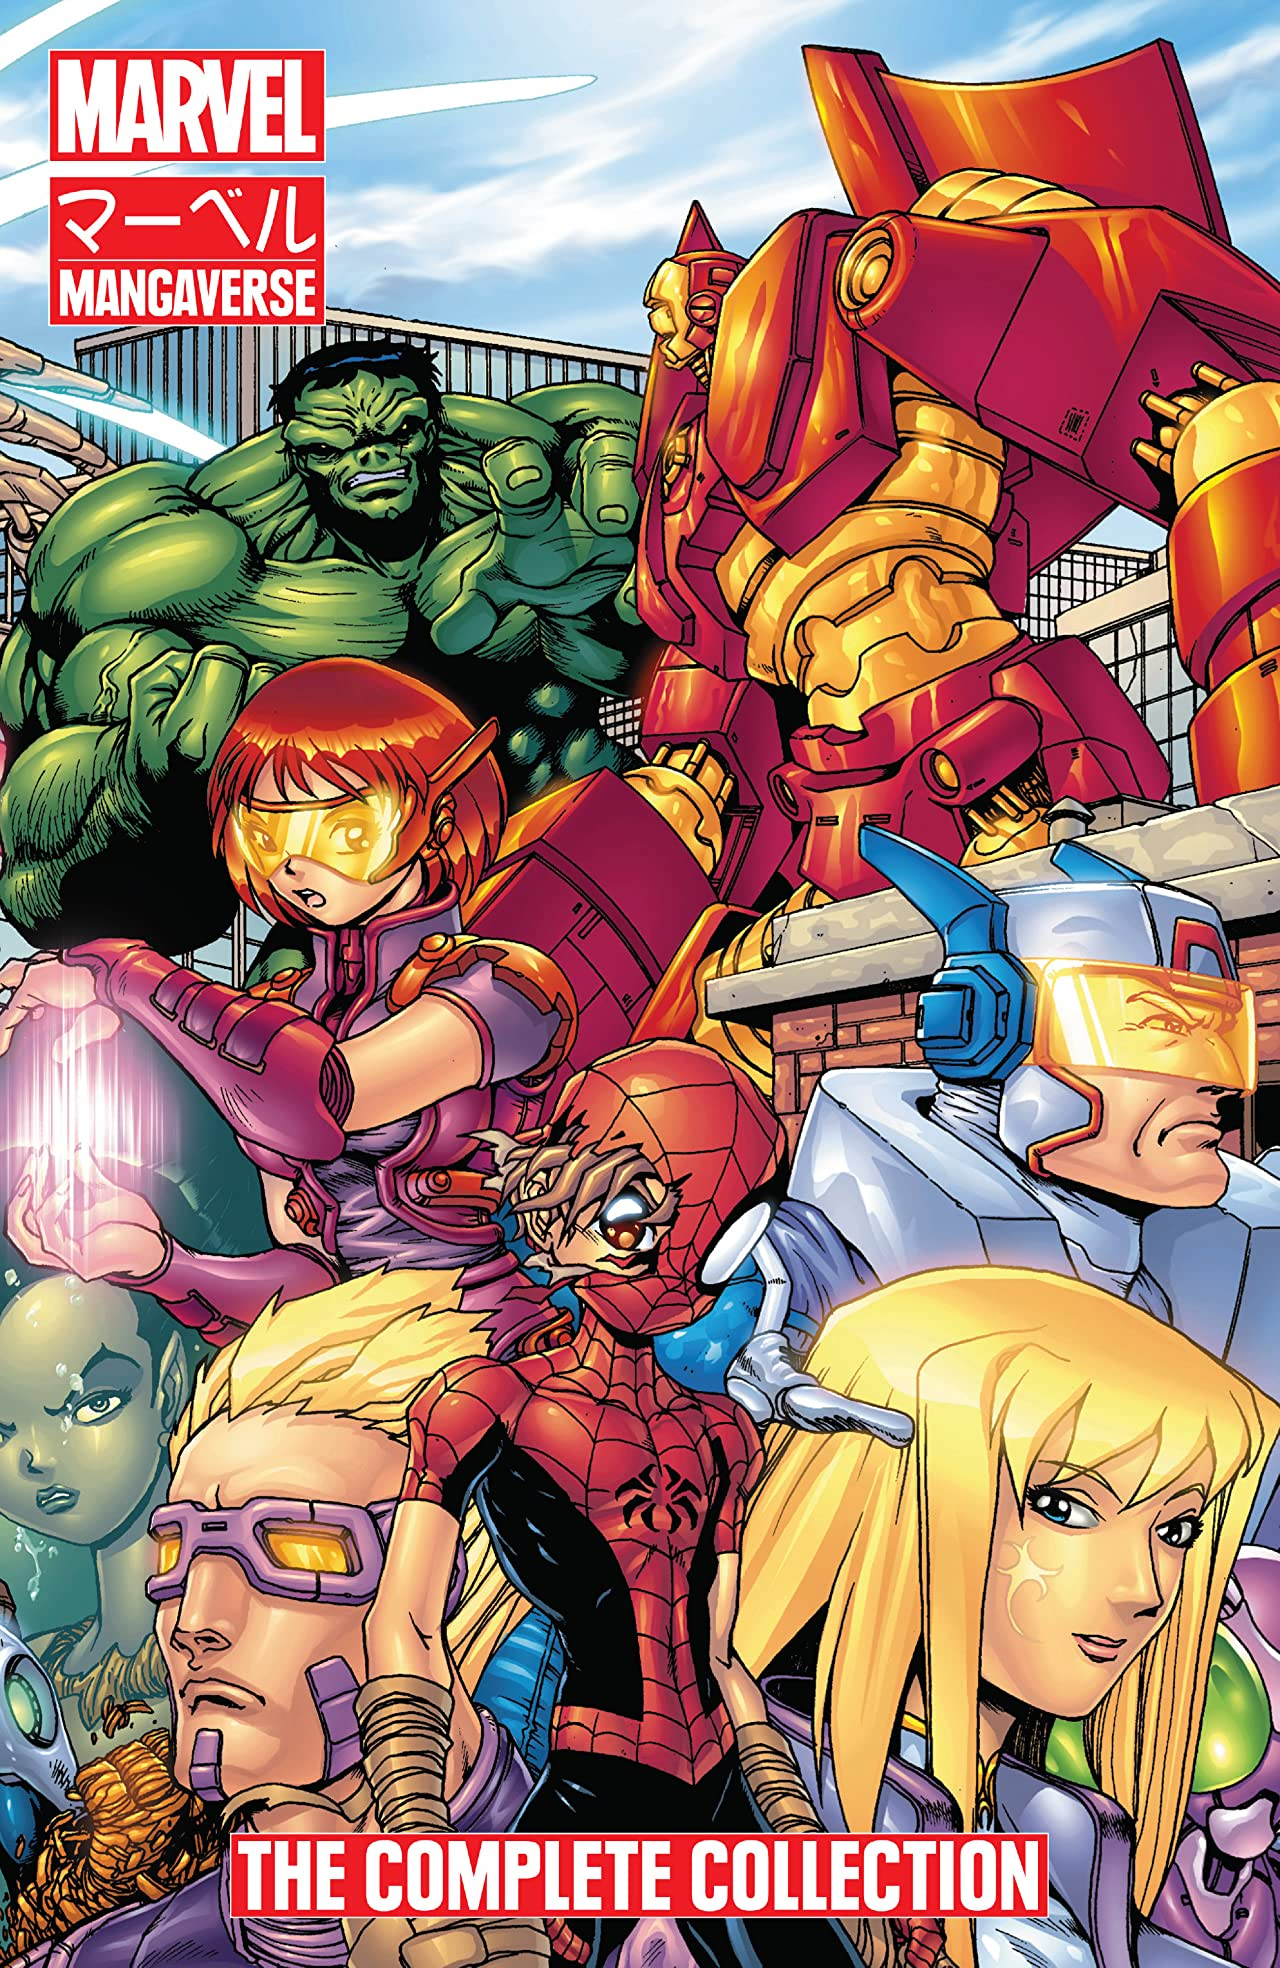 Marvel Mangaverse: The Complete Collection